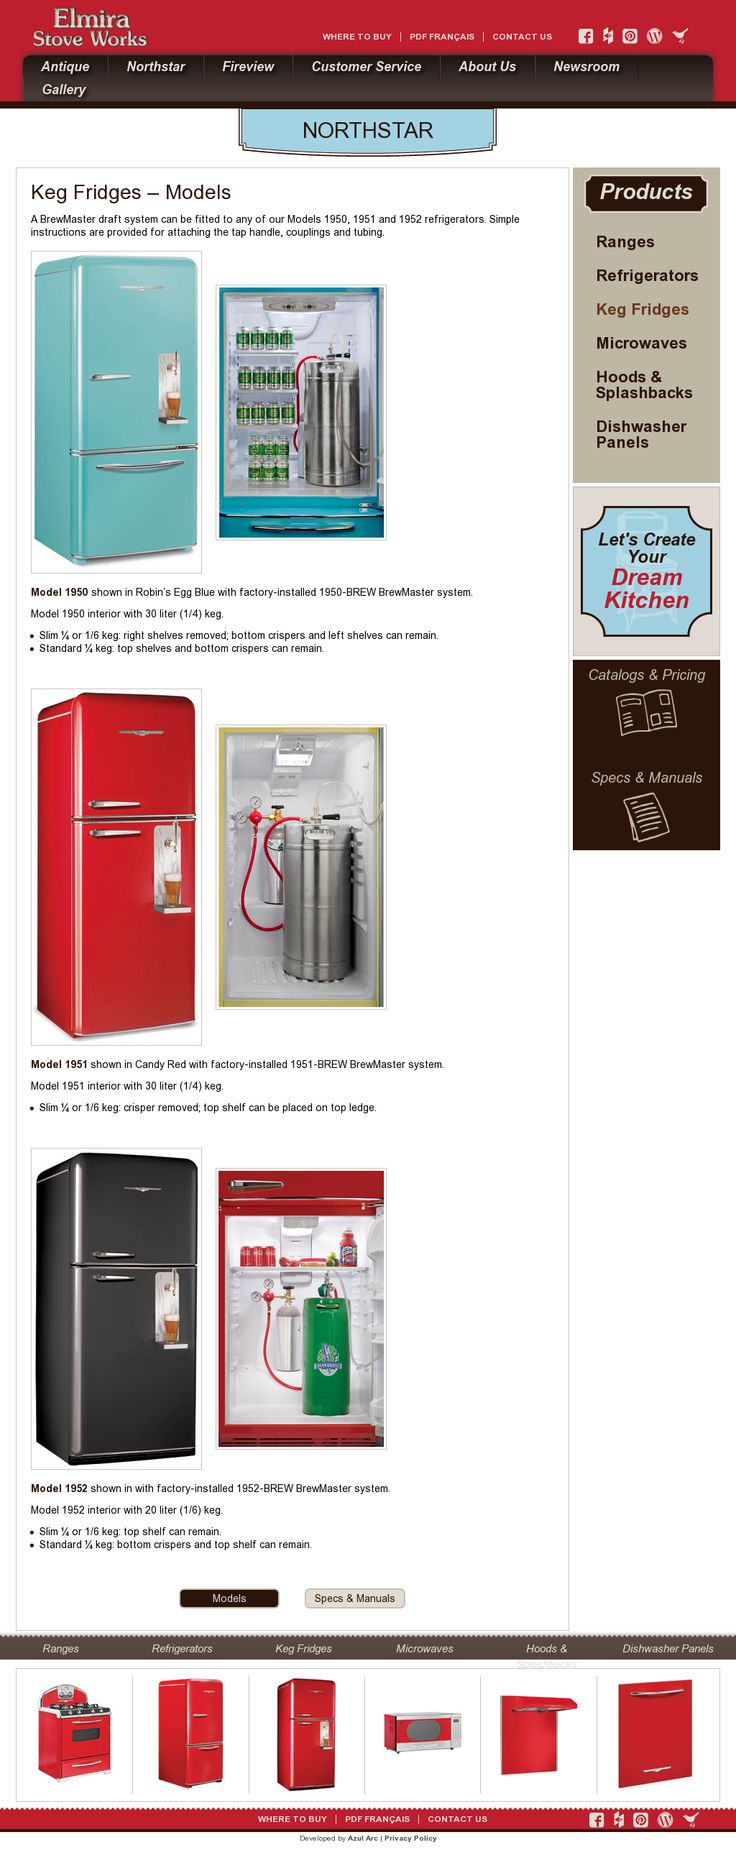 Keg fridges and their specs by Elmira Stove Works